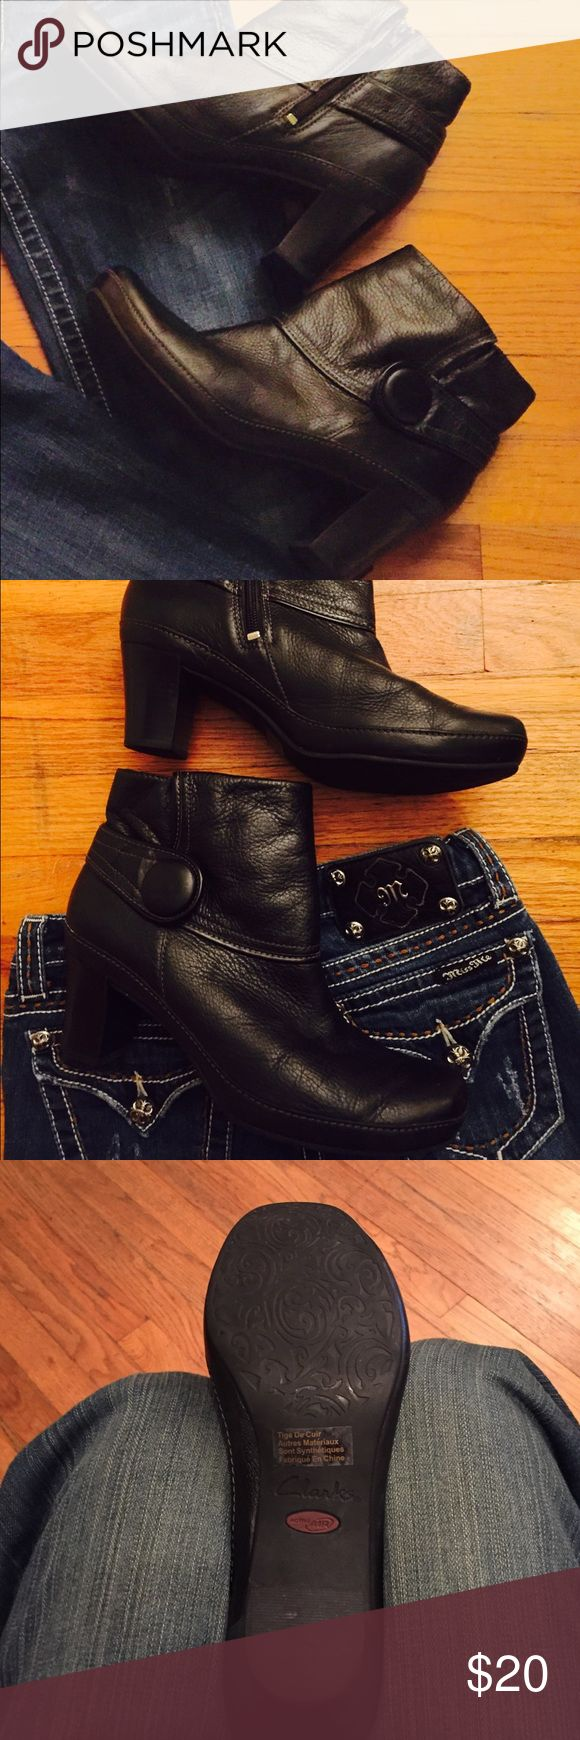 Clarks Black Leather ankle boots. Comfortable and great condition! Clarks ankle boots with zippers! Clark's Shoes Ankle Boots & Booties